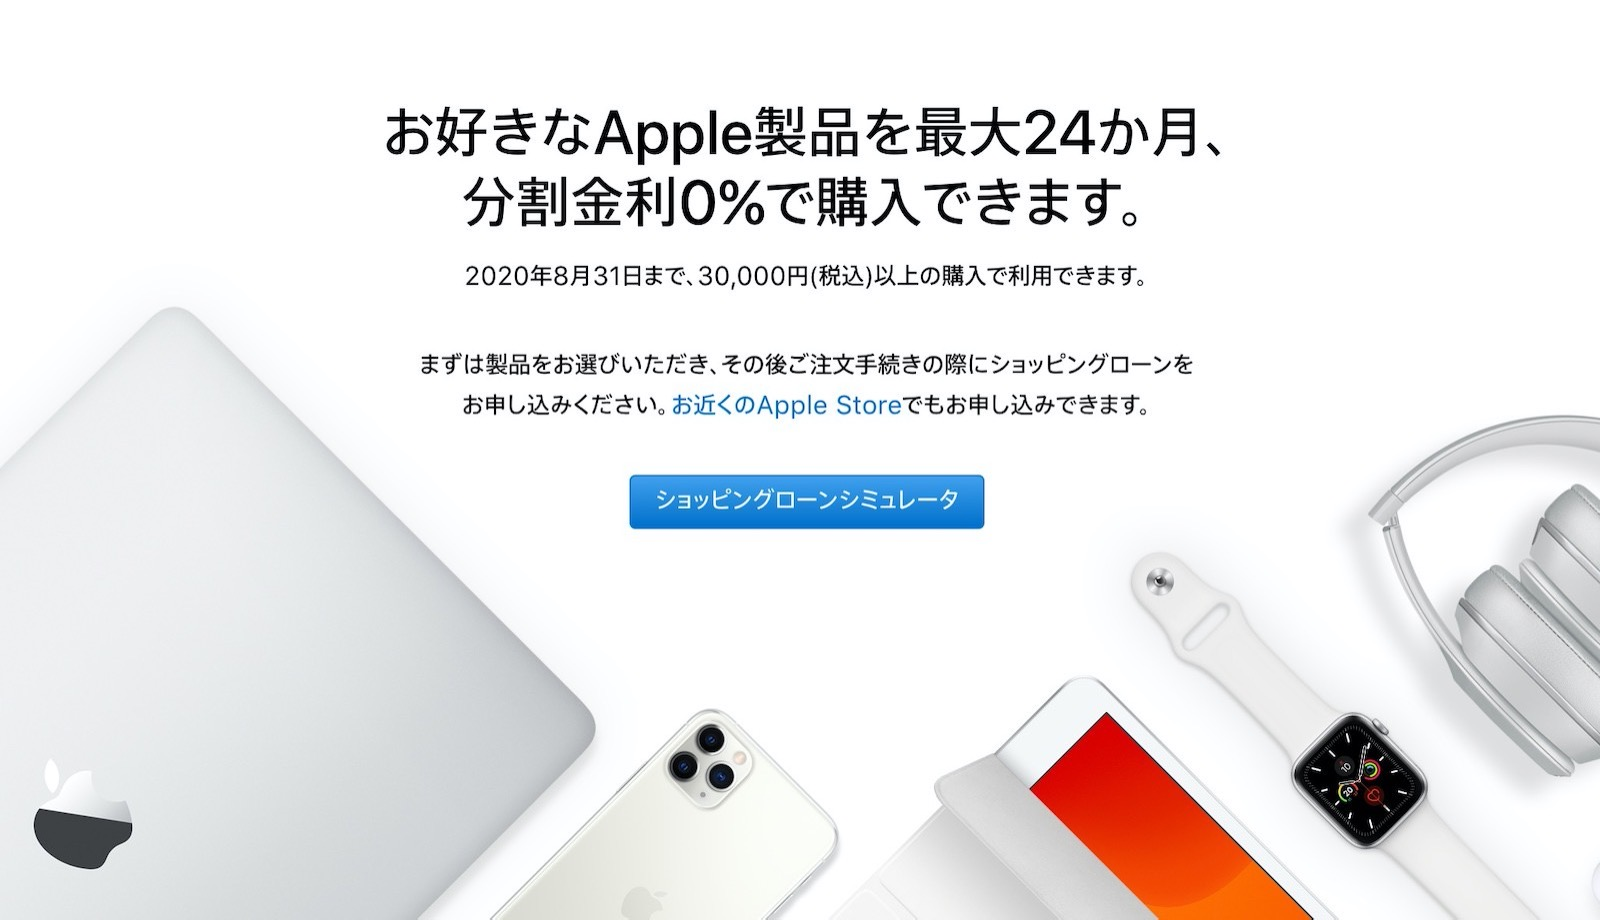 Apple financing campaign